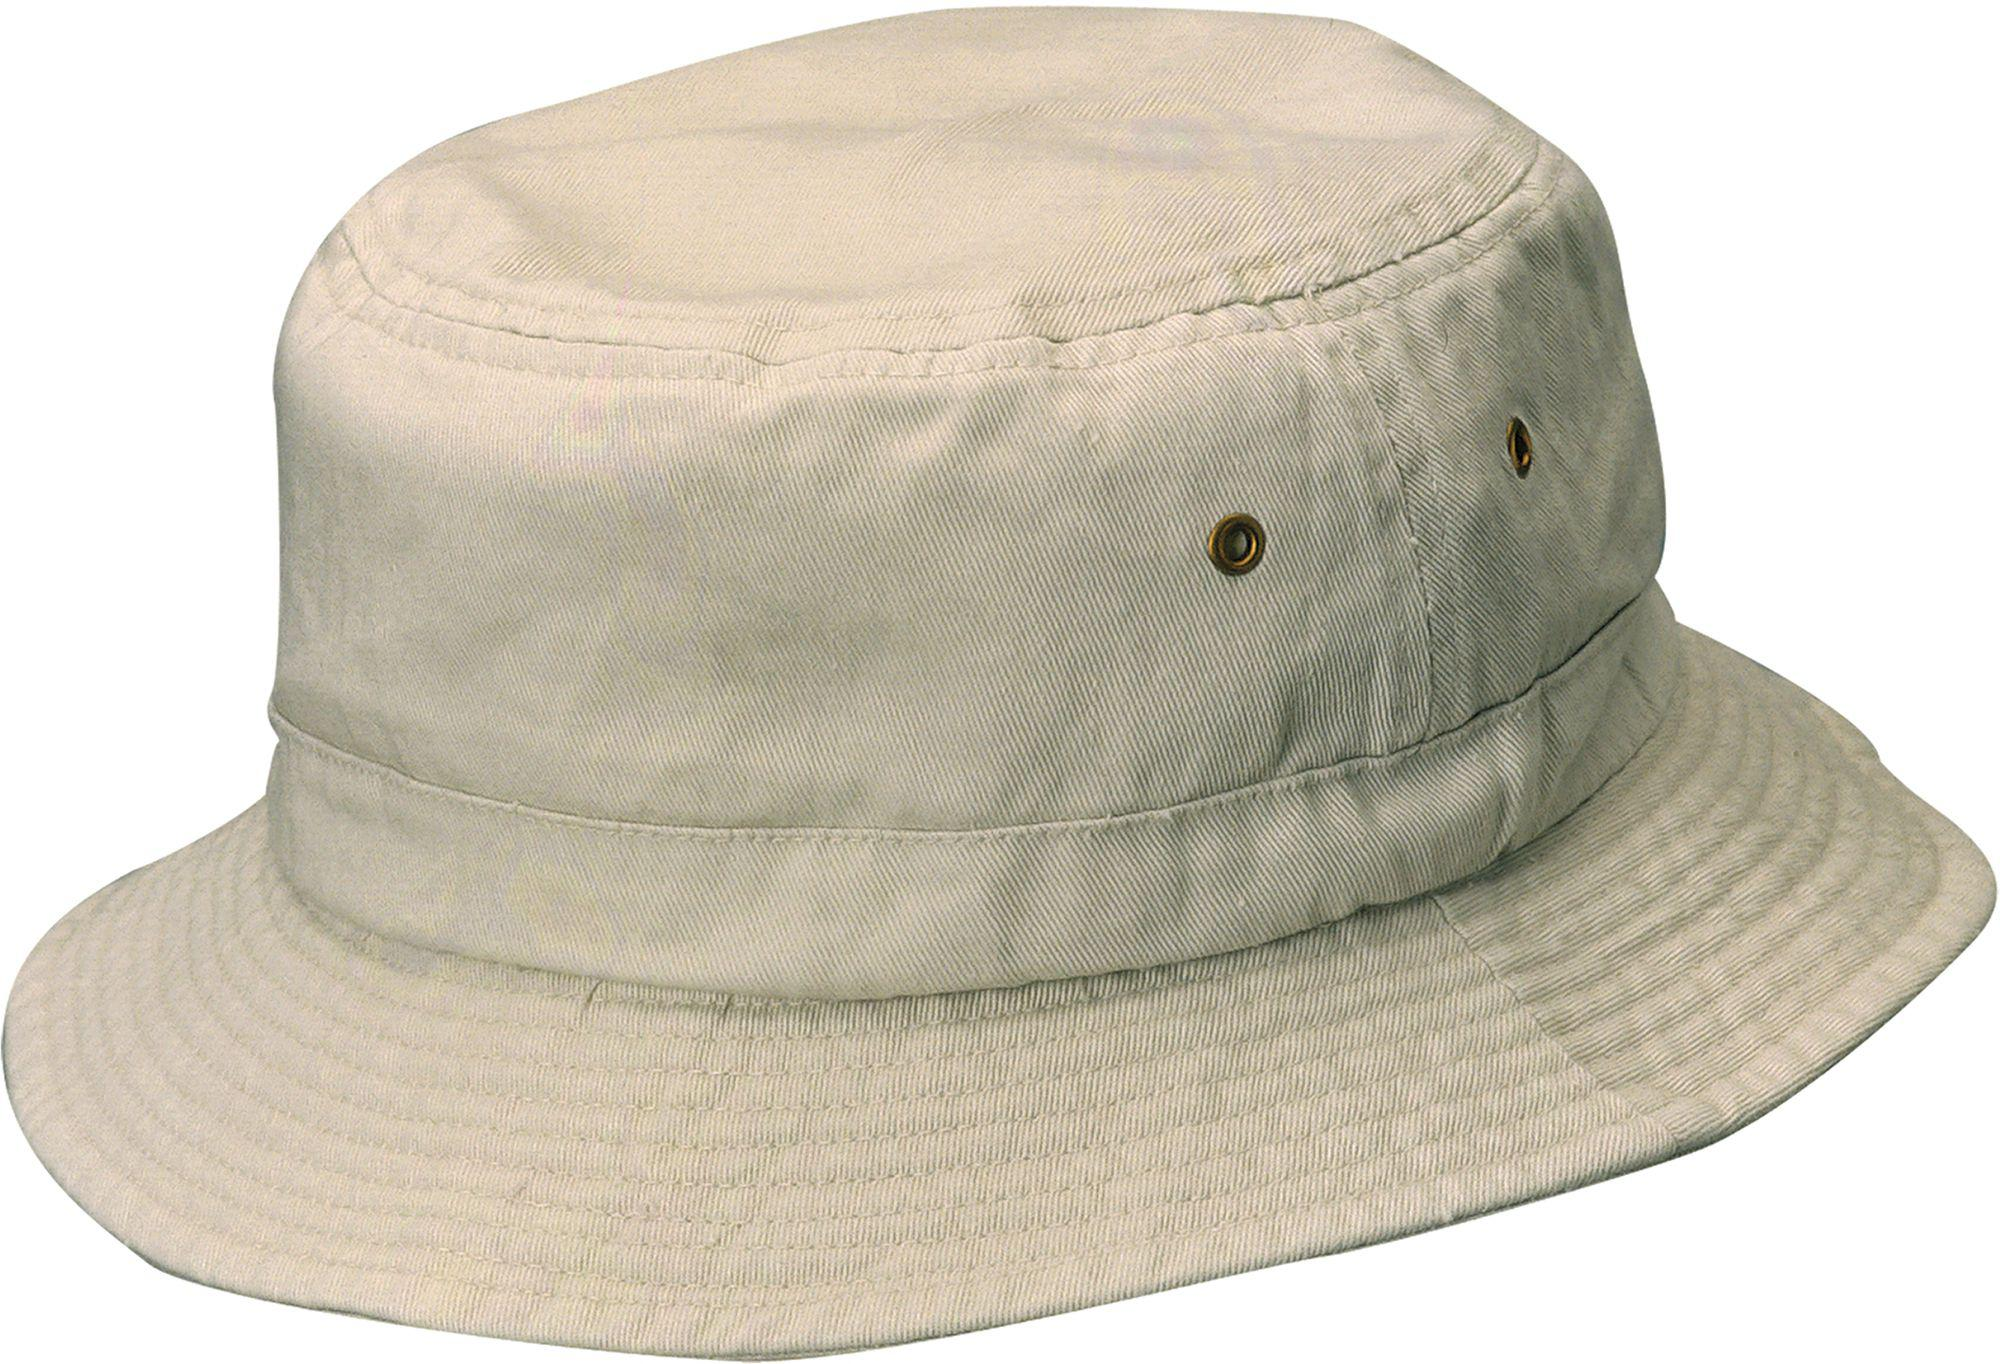 Lyst - Dorfman Pacific Pigment Dyed Twill Bucket Hat in Natural for Men 0a1ca5f67a24